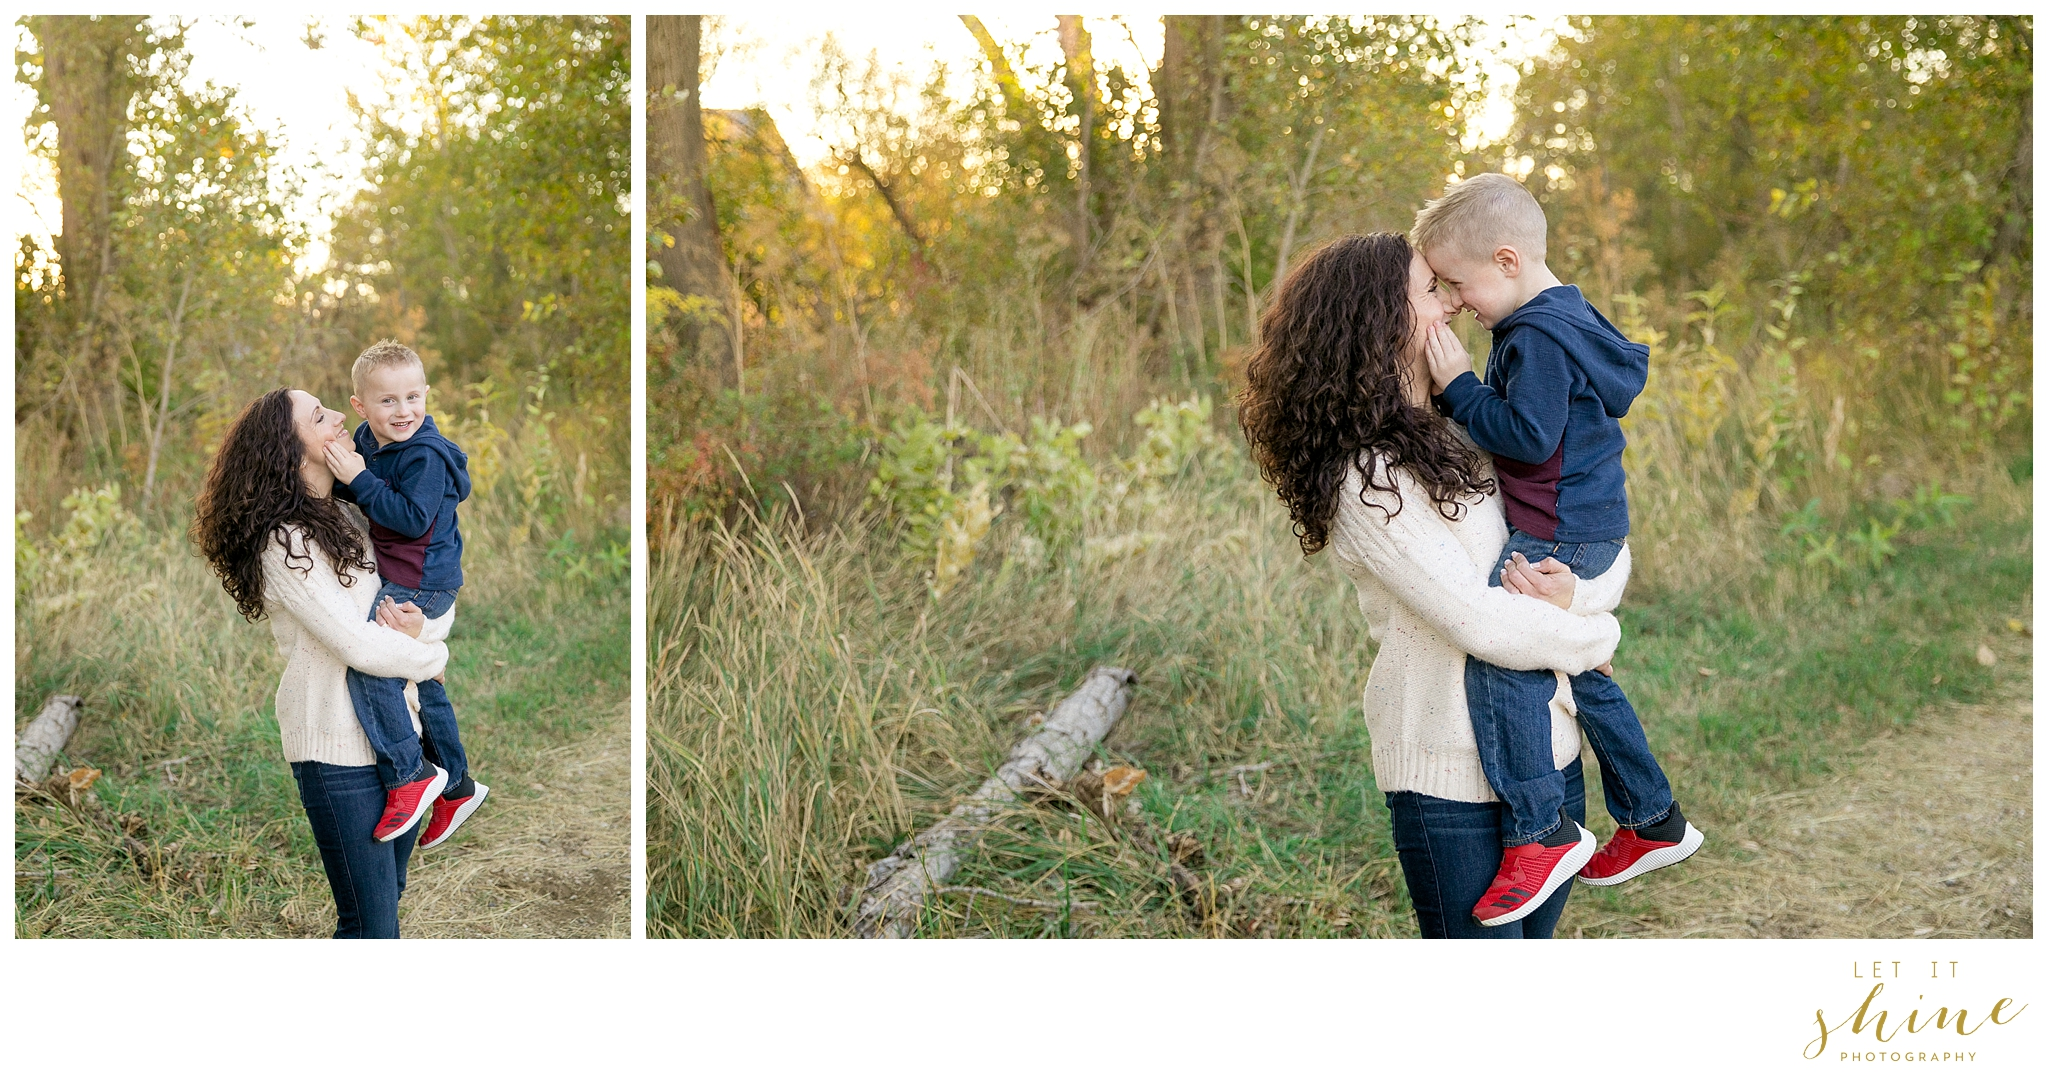 Boise Fall Family Photographer-9320.jpg